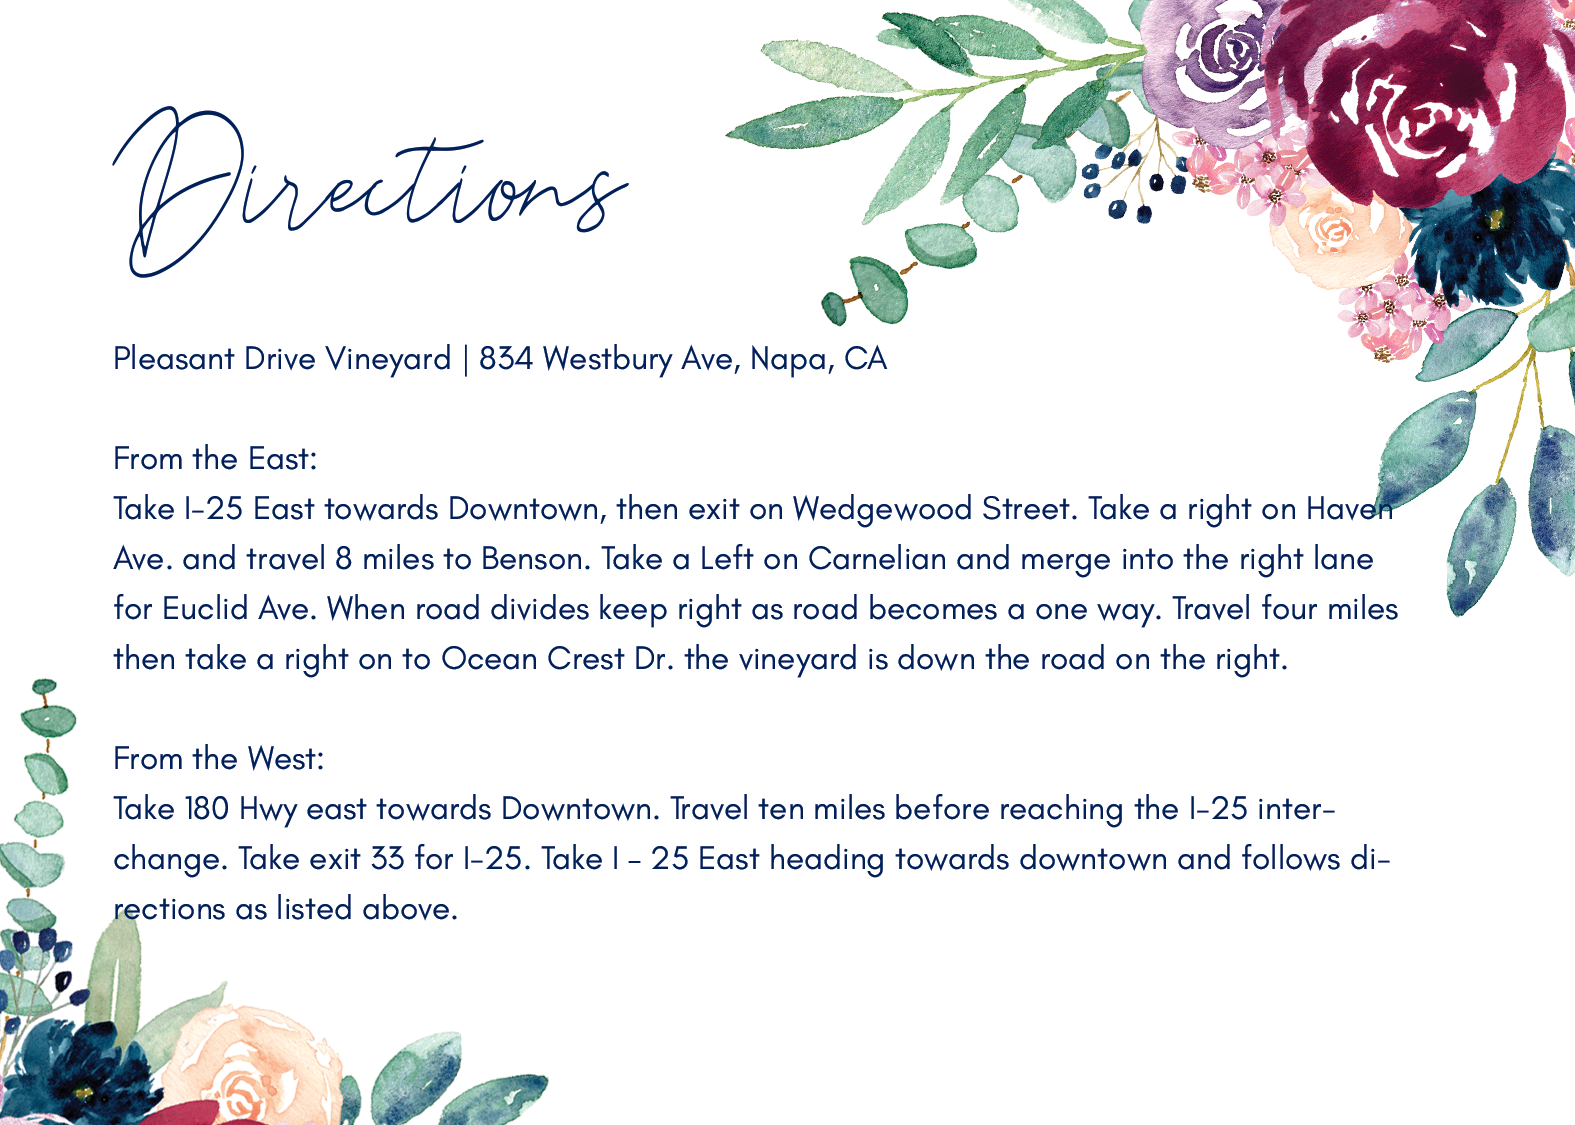 directions-card-burgundy_RGB.png